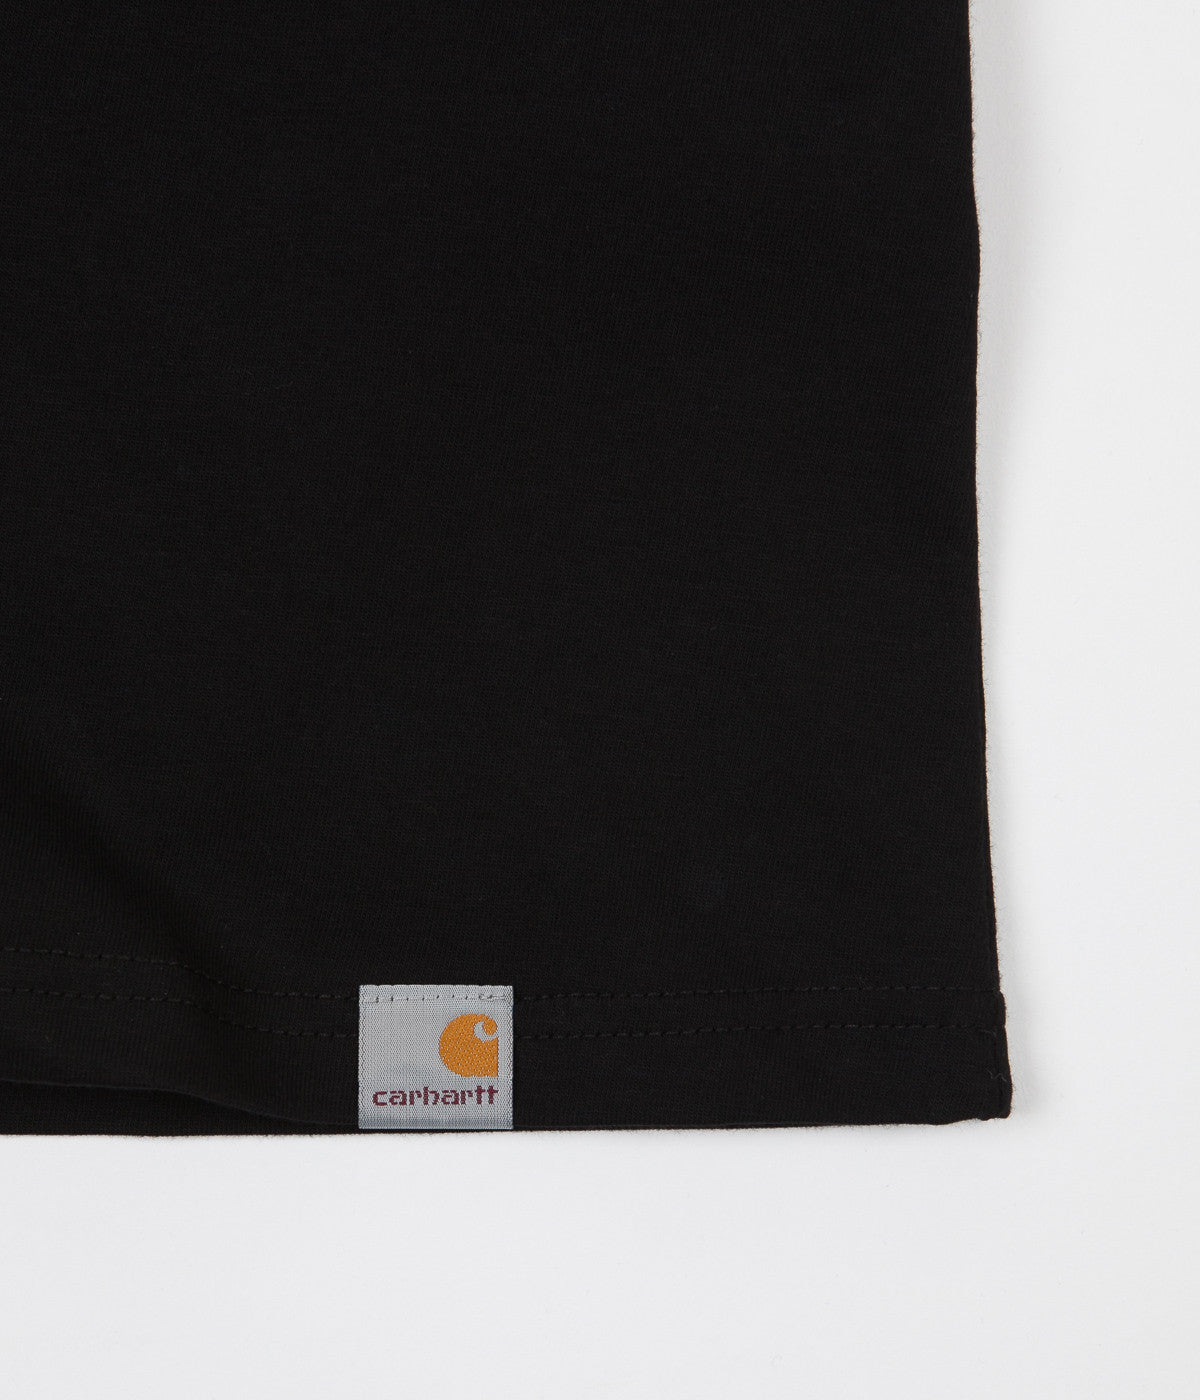 Carhartt Dead End T-Shirt - Black / White